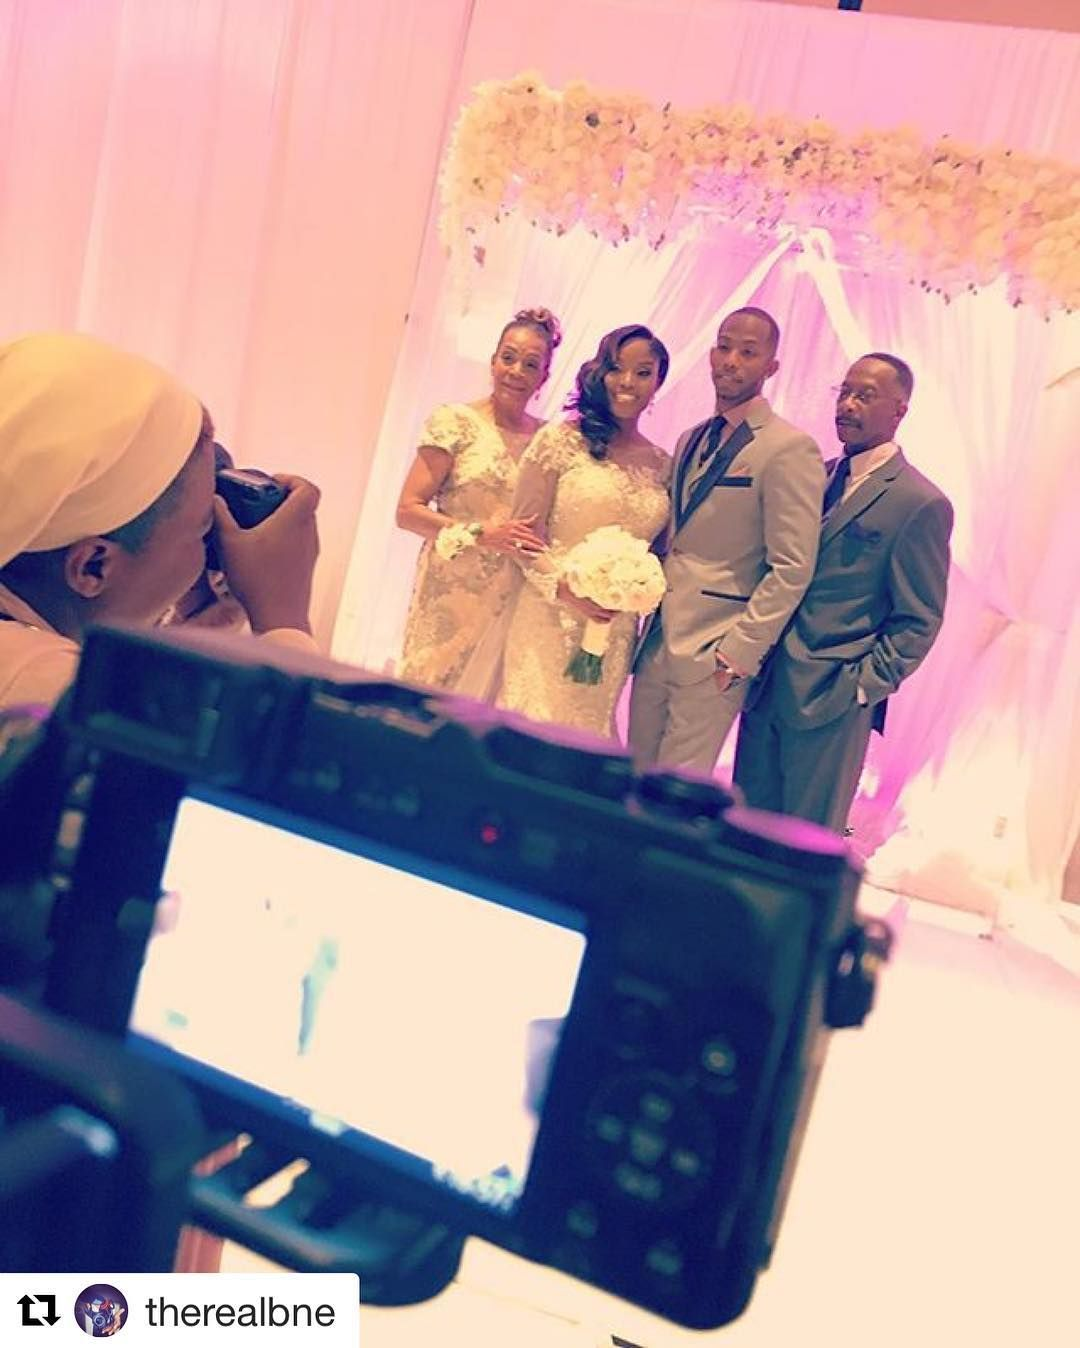 Behind the scenes with pinxit repost therealbne congrats to the